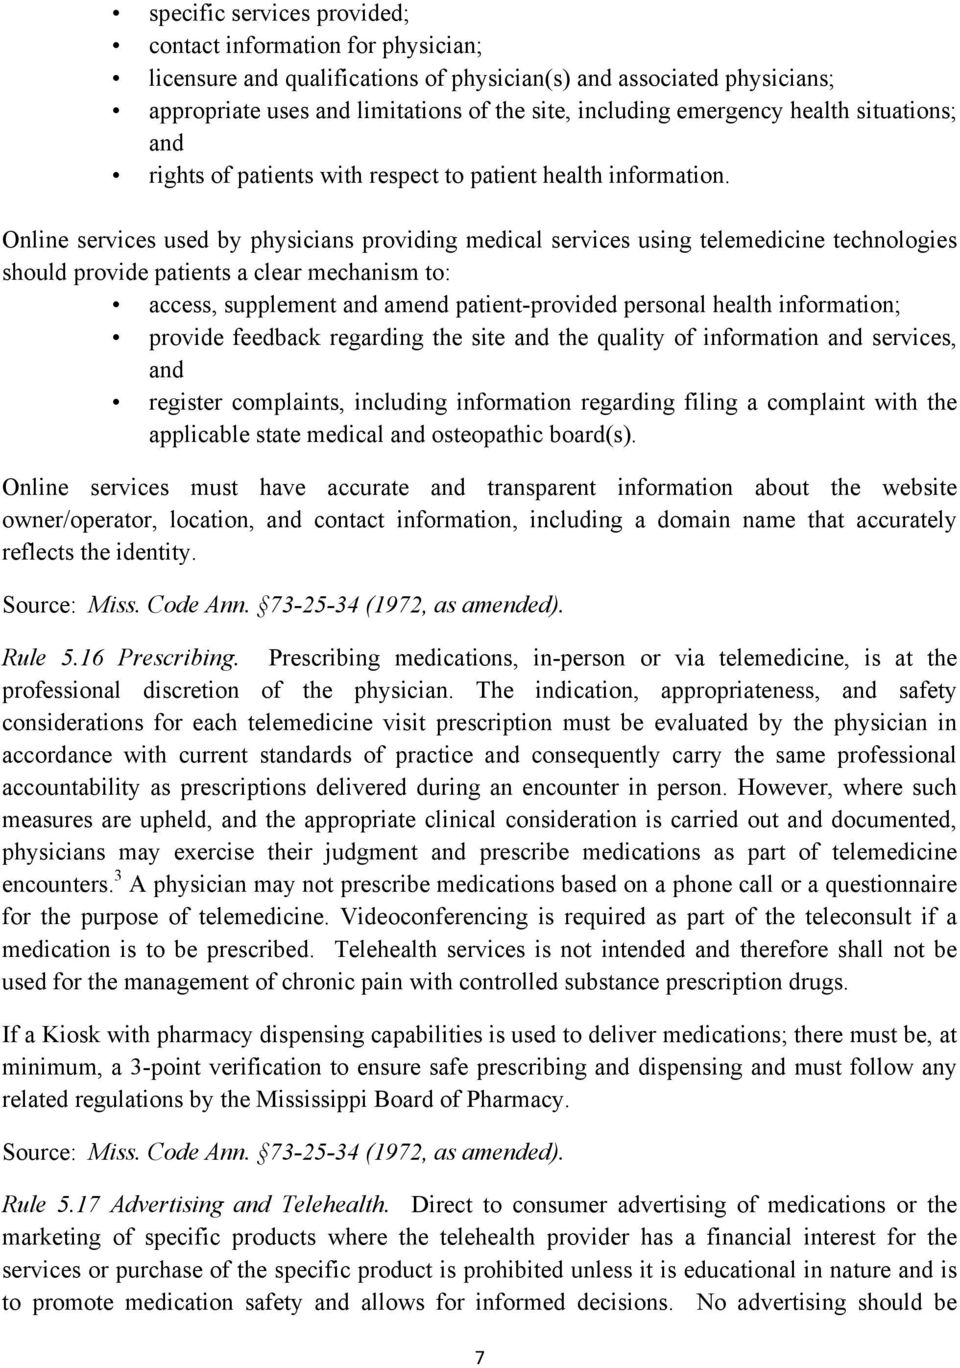 Online services used by physicians providing medical services using telemedicine technologies should provide patients a clear mechanism to: access, supplement and amend patient-provided personal